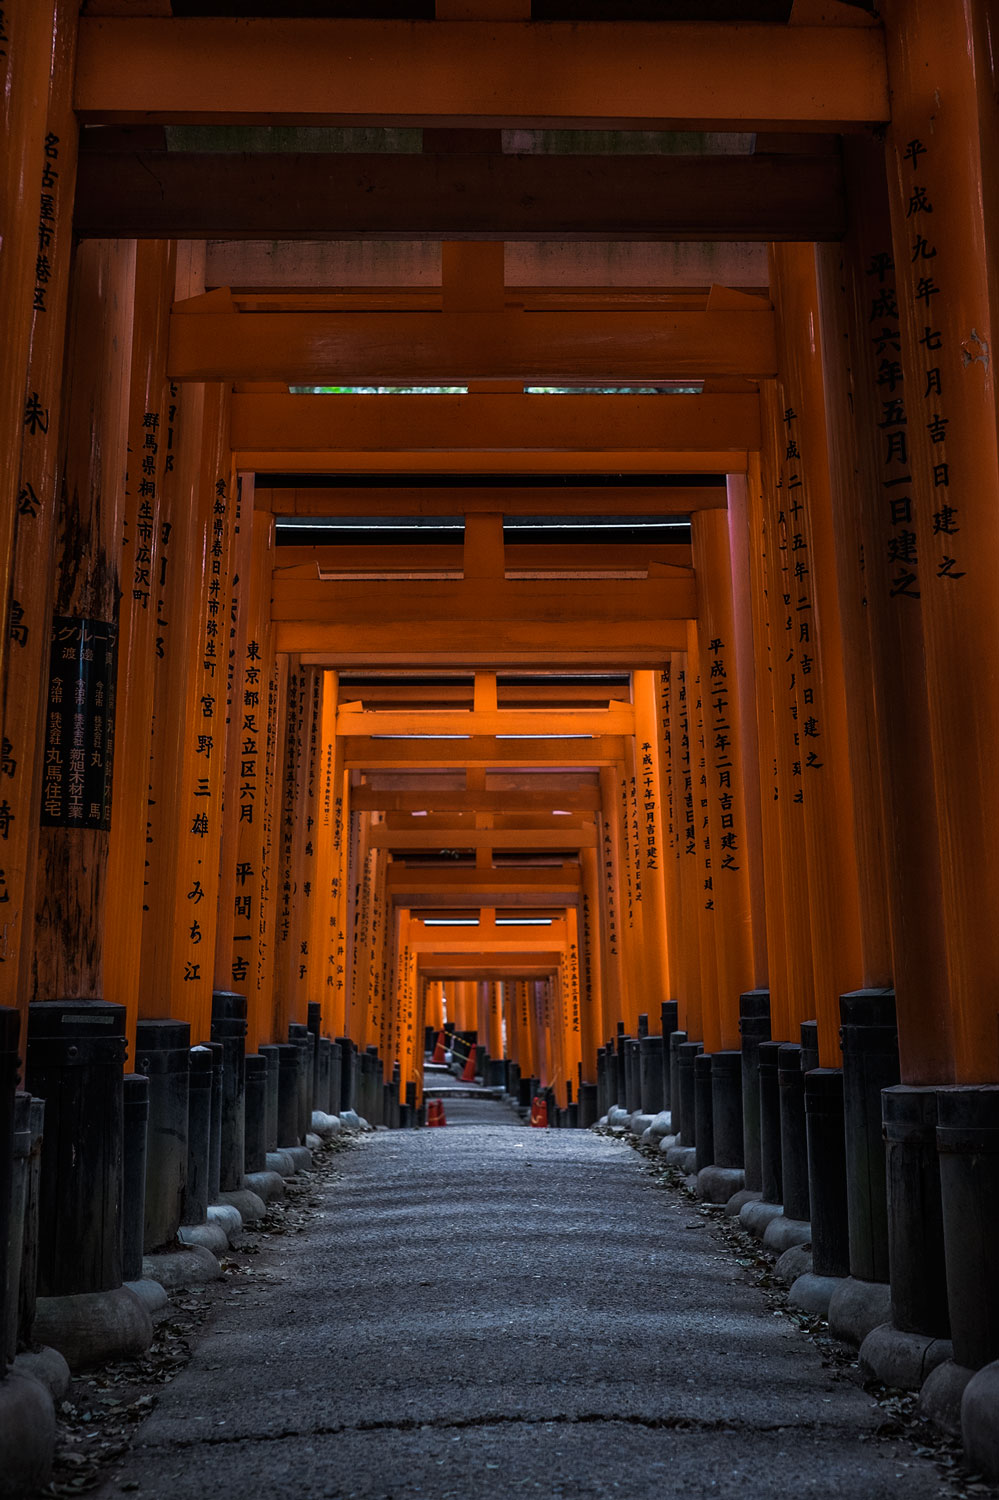 The Torii Path